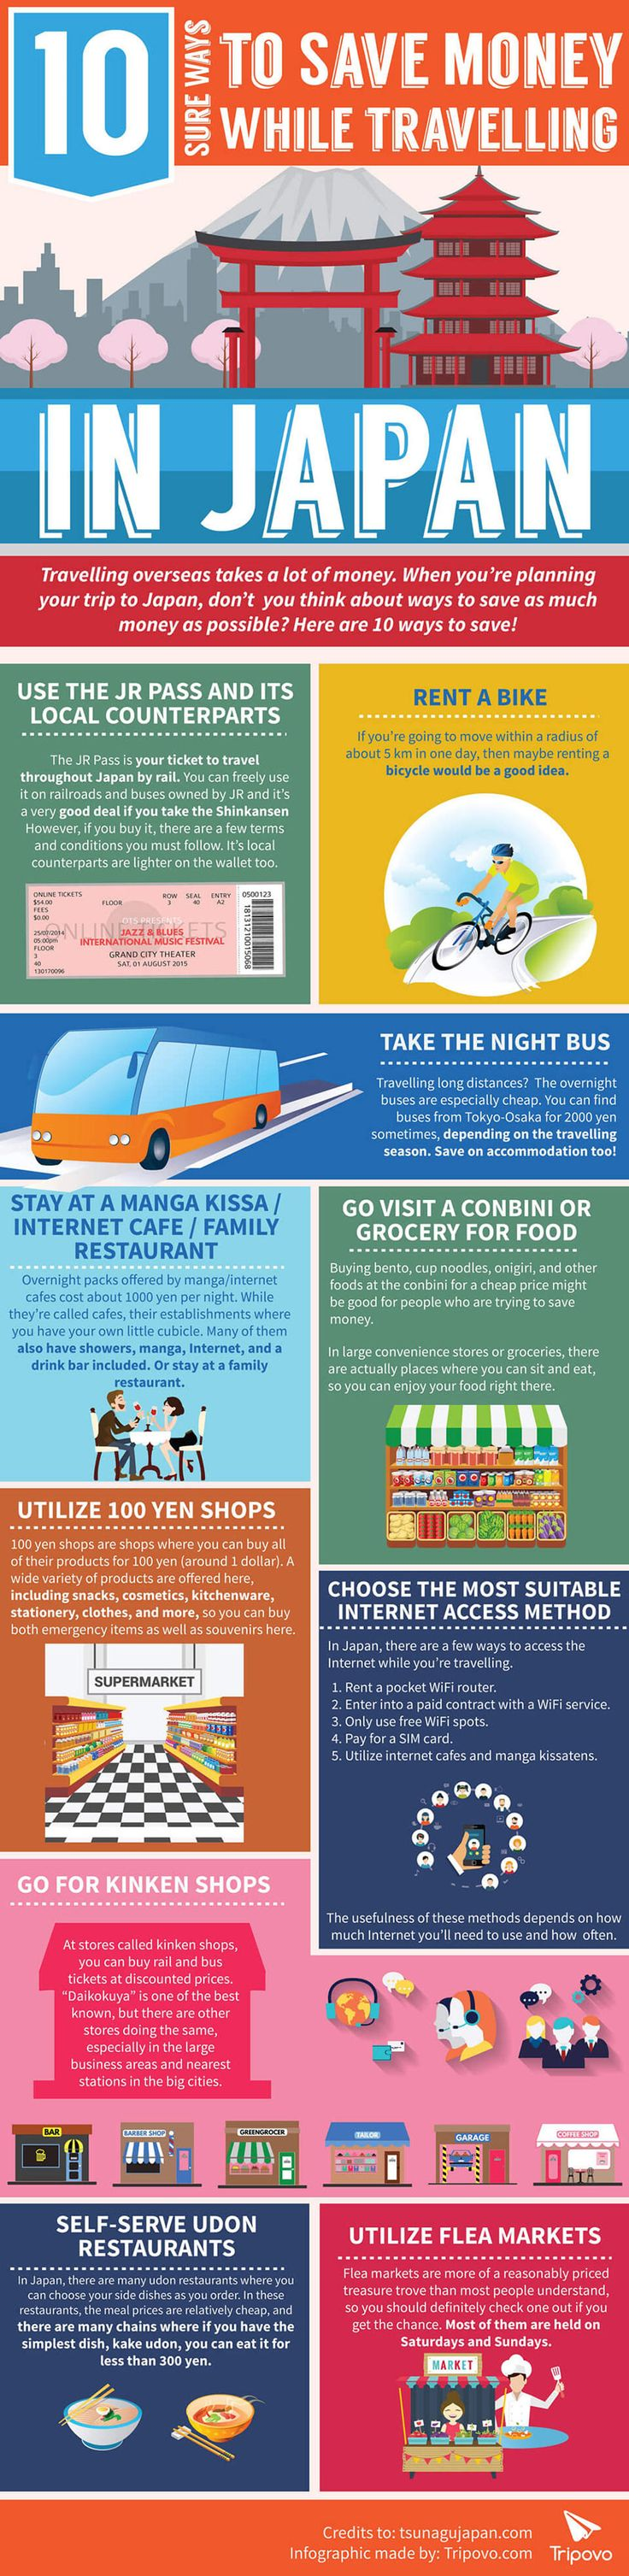 10 Sure Ways to Save Money While Traveling in Japan Travel Infographic